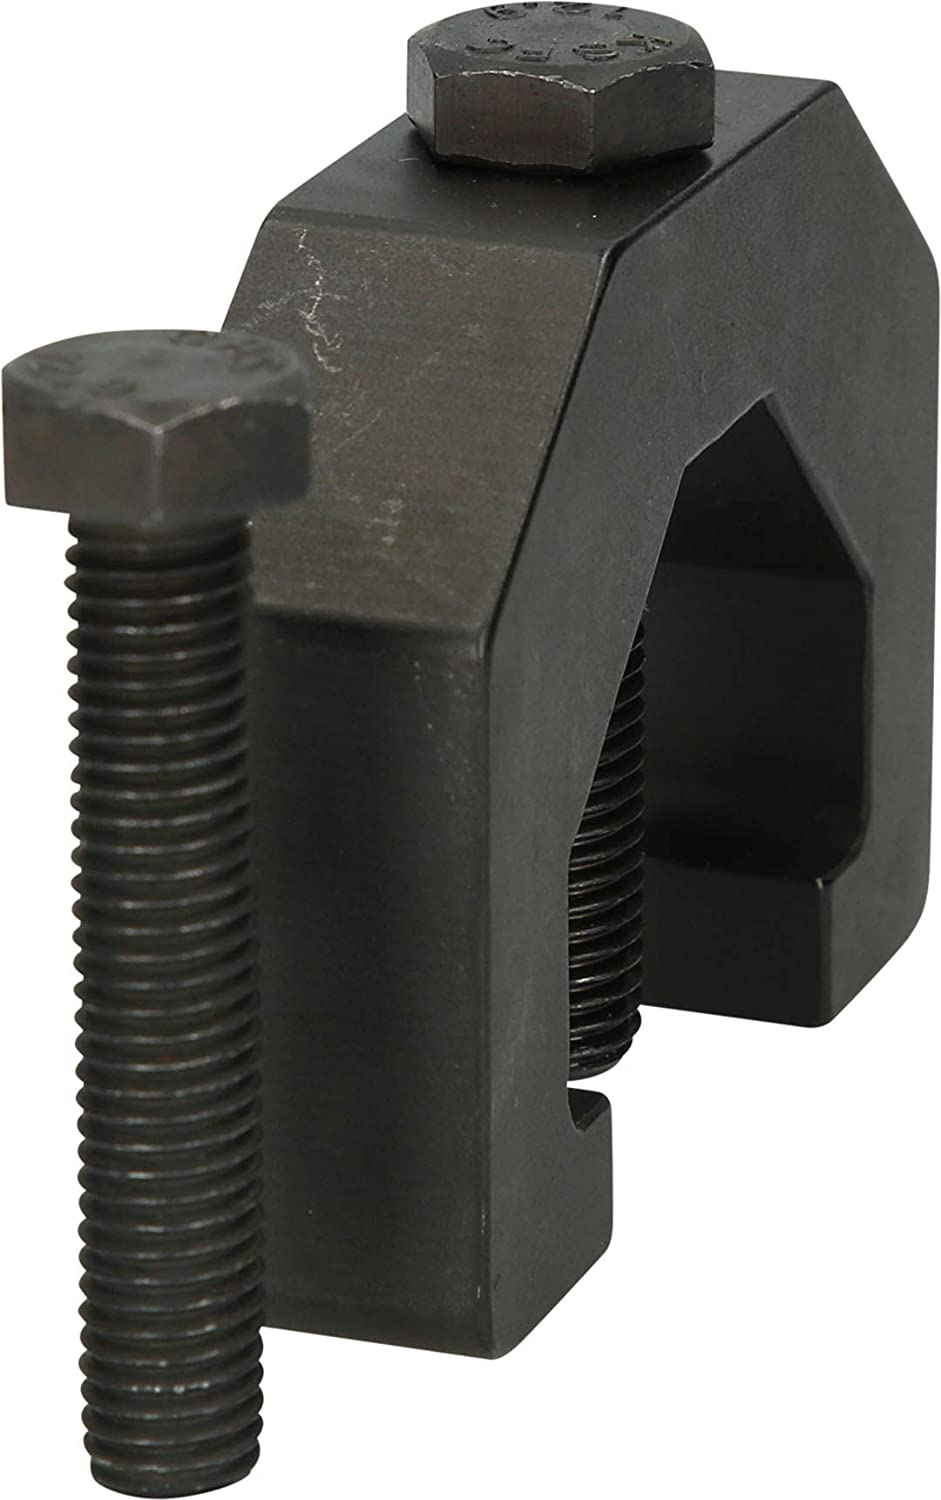 43 mm KS TOOLS 670.0012 Ball Joint Puller for Pitman arm for Land Rover